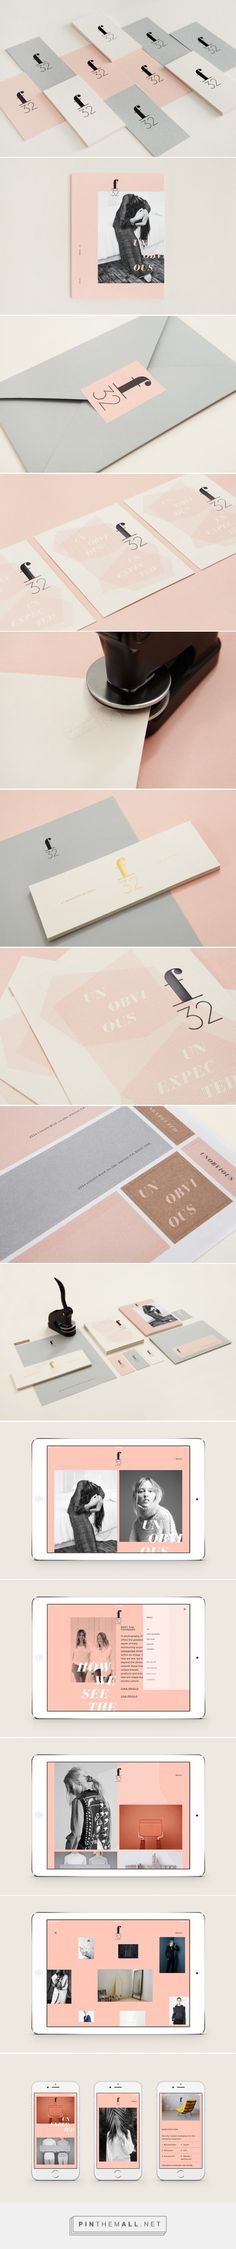 F32 identity created by Blok Design - Rain Creative... - a grouped images picture - Pin Them All